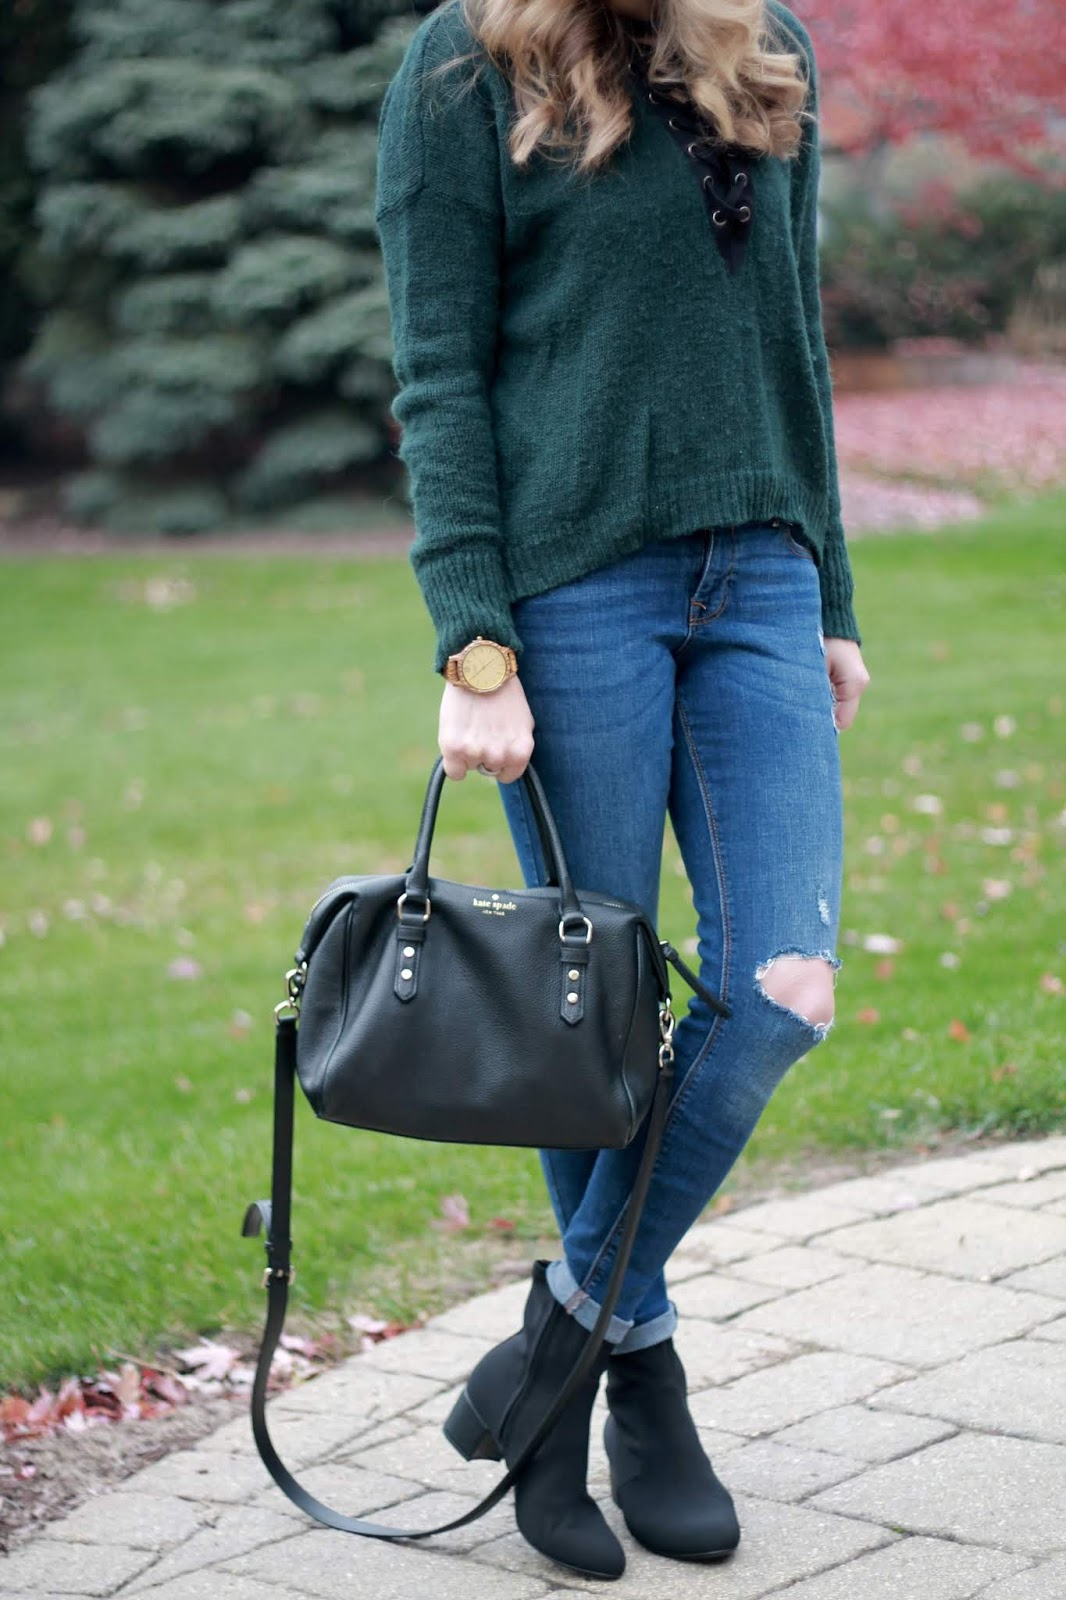 Eva trends grey polka dot dress, ABEO sock booties, black quilted tote, green lace up sweater, distressed jeans, black Kate Spade crossbody, black wide brim hat